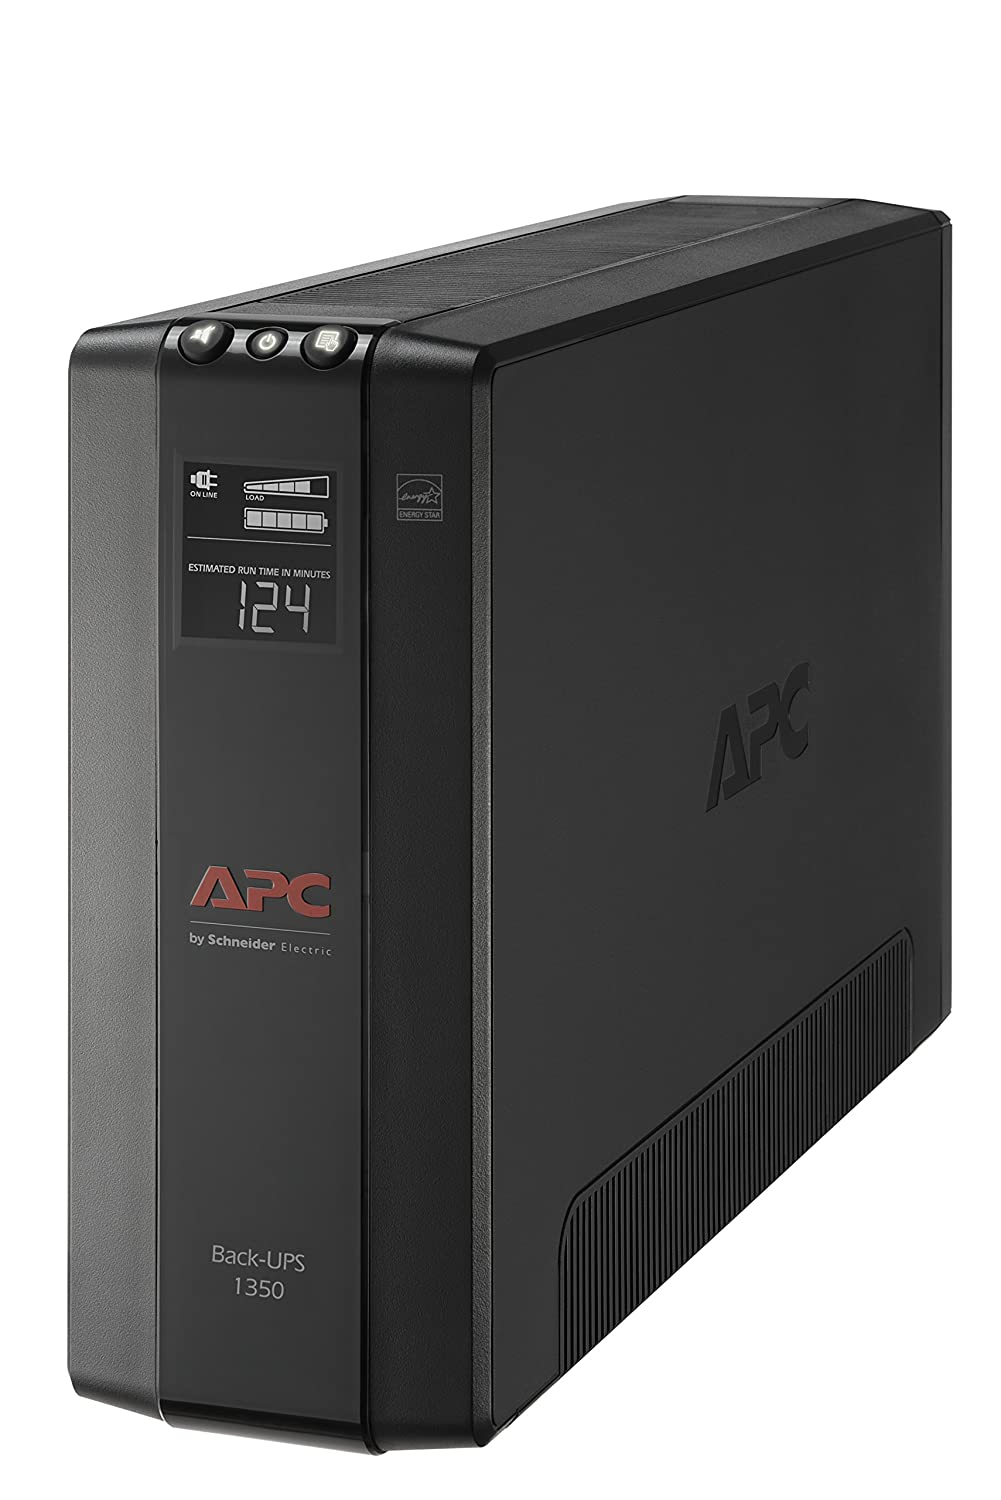 APC UPS Battery Backup & Surge Protector with AVR, 1350VA, APC Back-UPS Pro  (BX1350M)